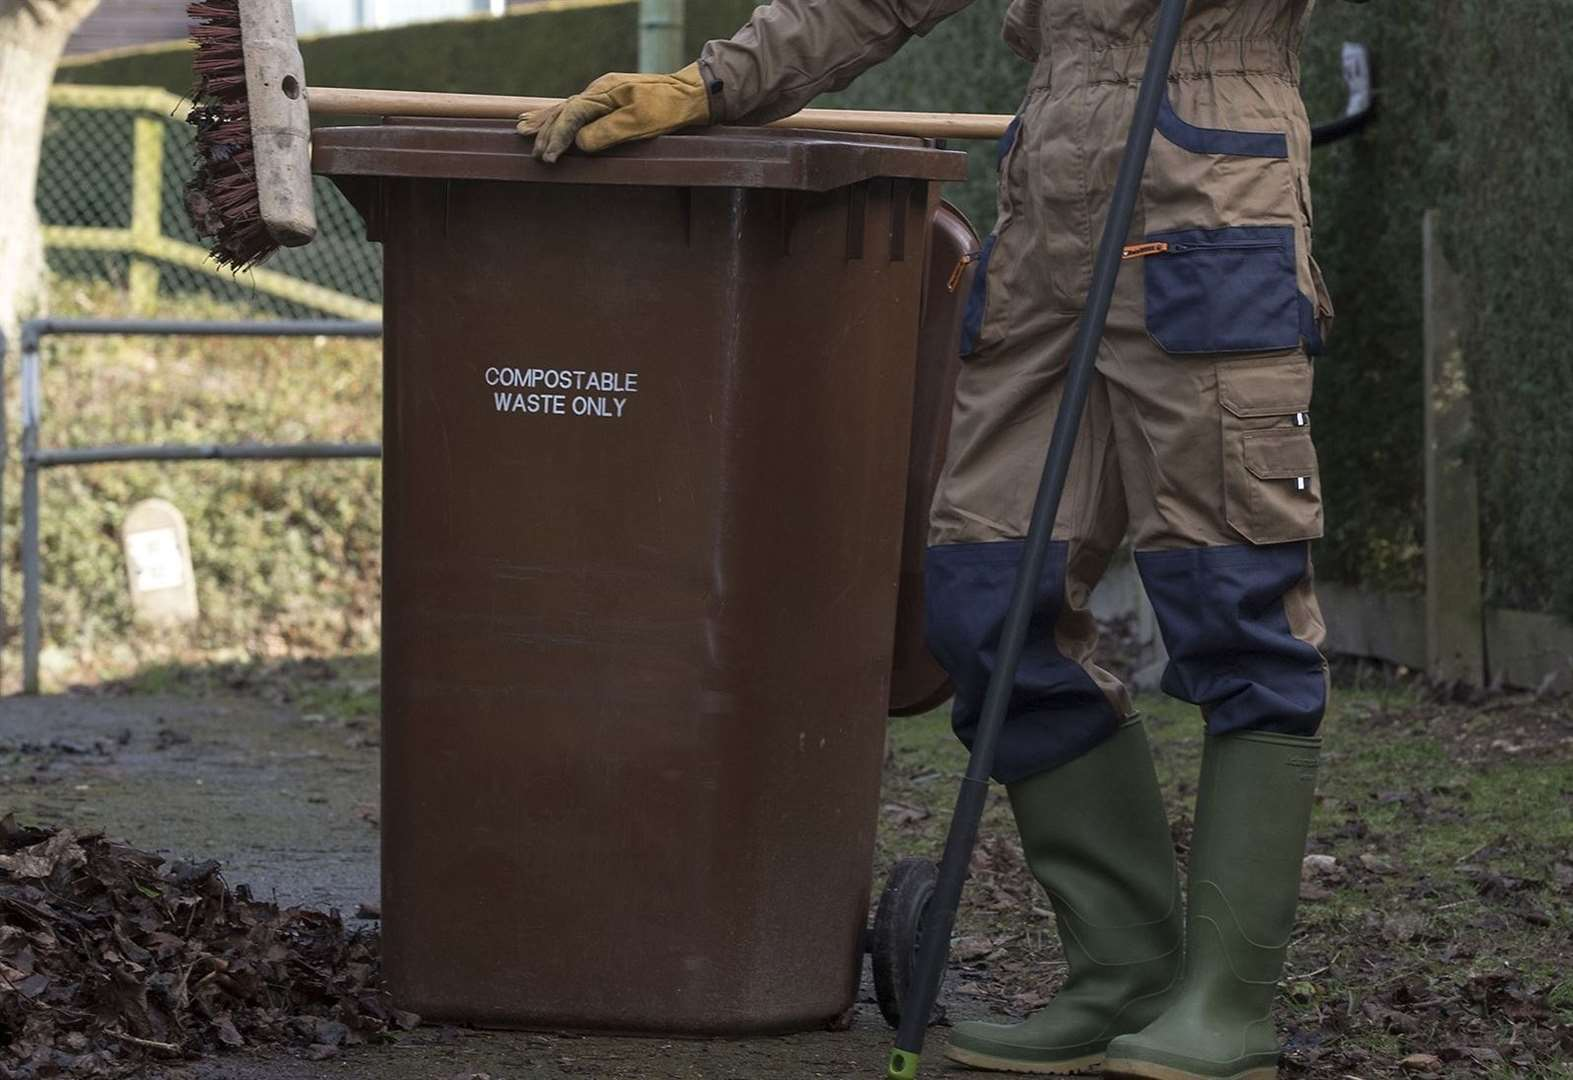 This is how many Suffolk councils charge over the national average for brown bin collections